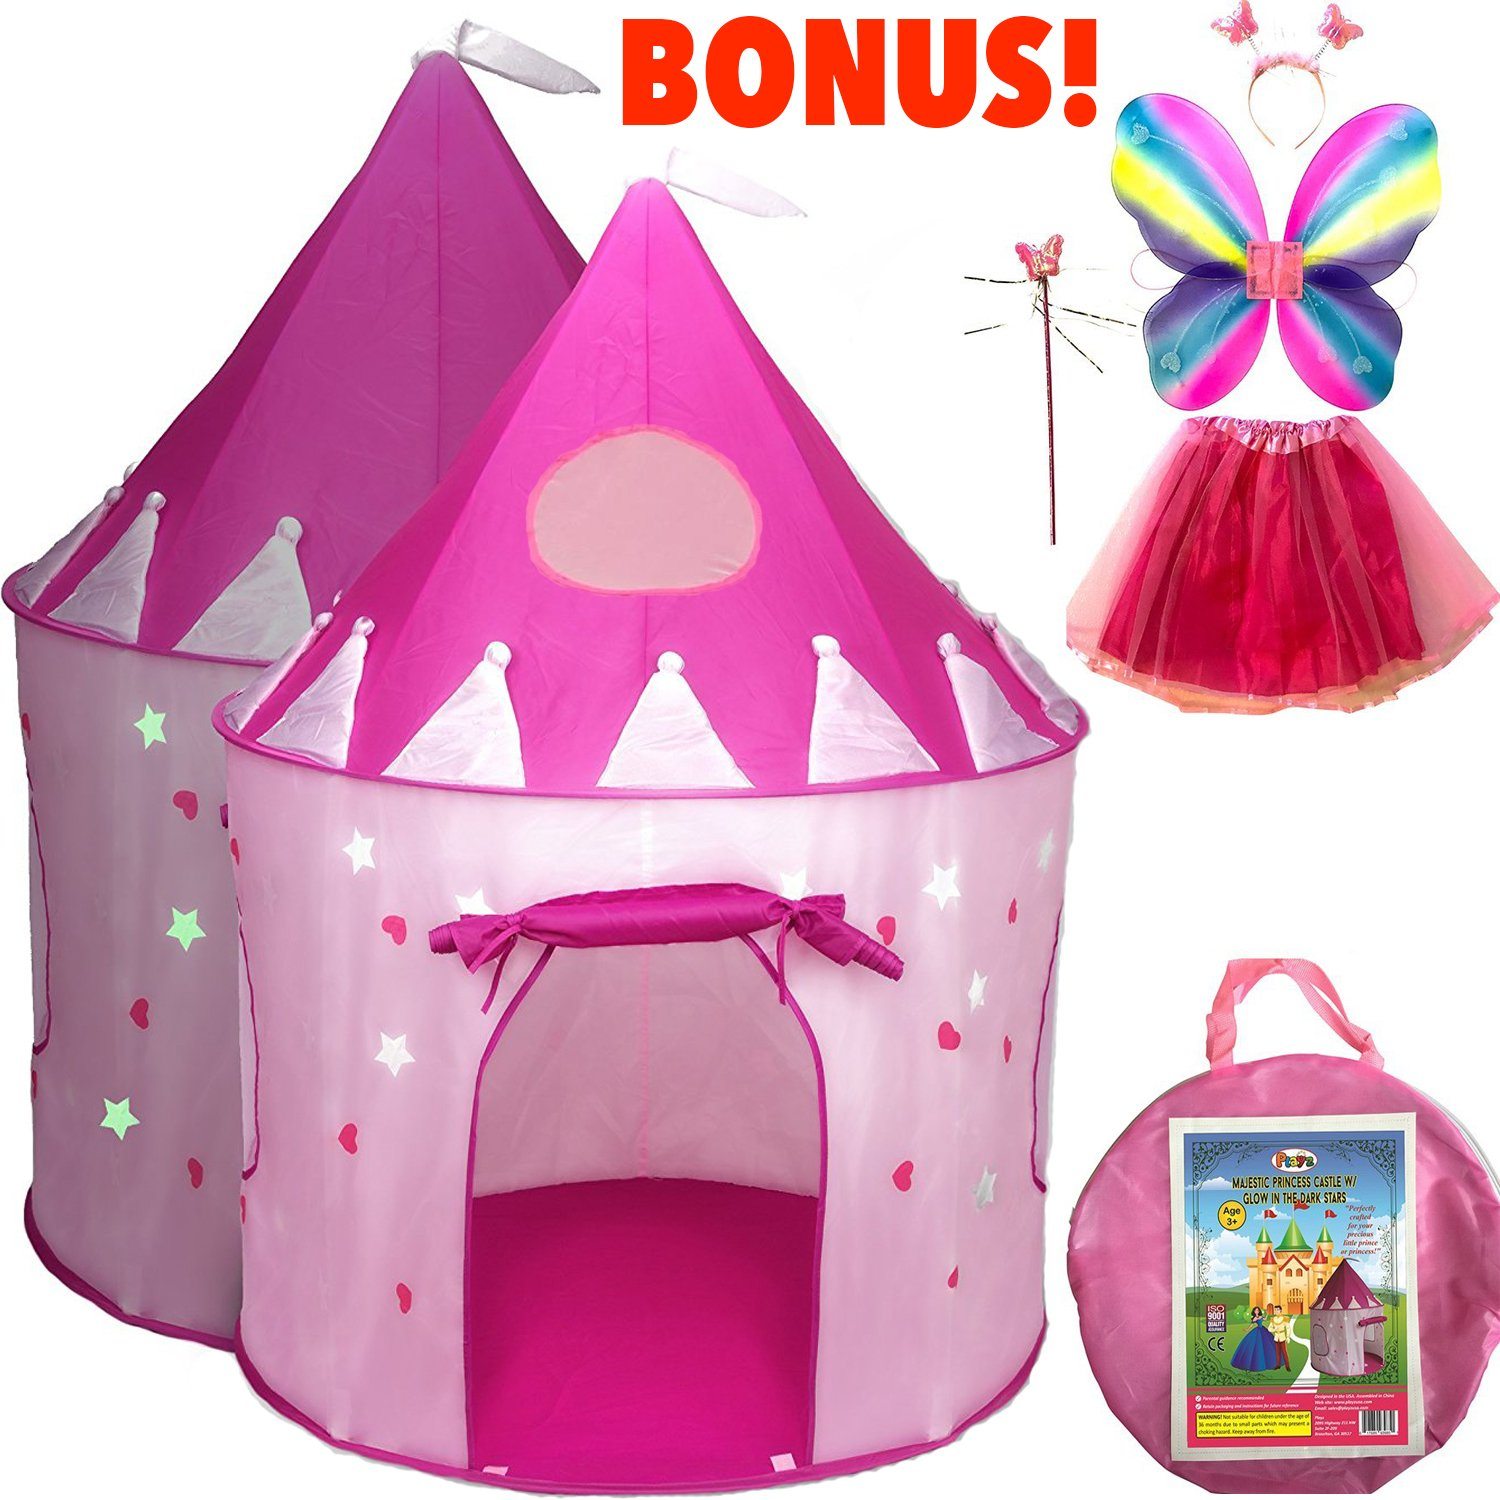 5-Piece Princess Castle Girls Play Tent ...  sc 1 st  Amazon.com & Amazon.com: Play Tents u0026 Tunnels: Toys u0026 Games: Play Tents Play ...